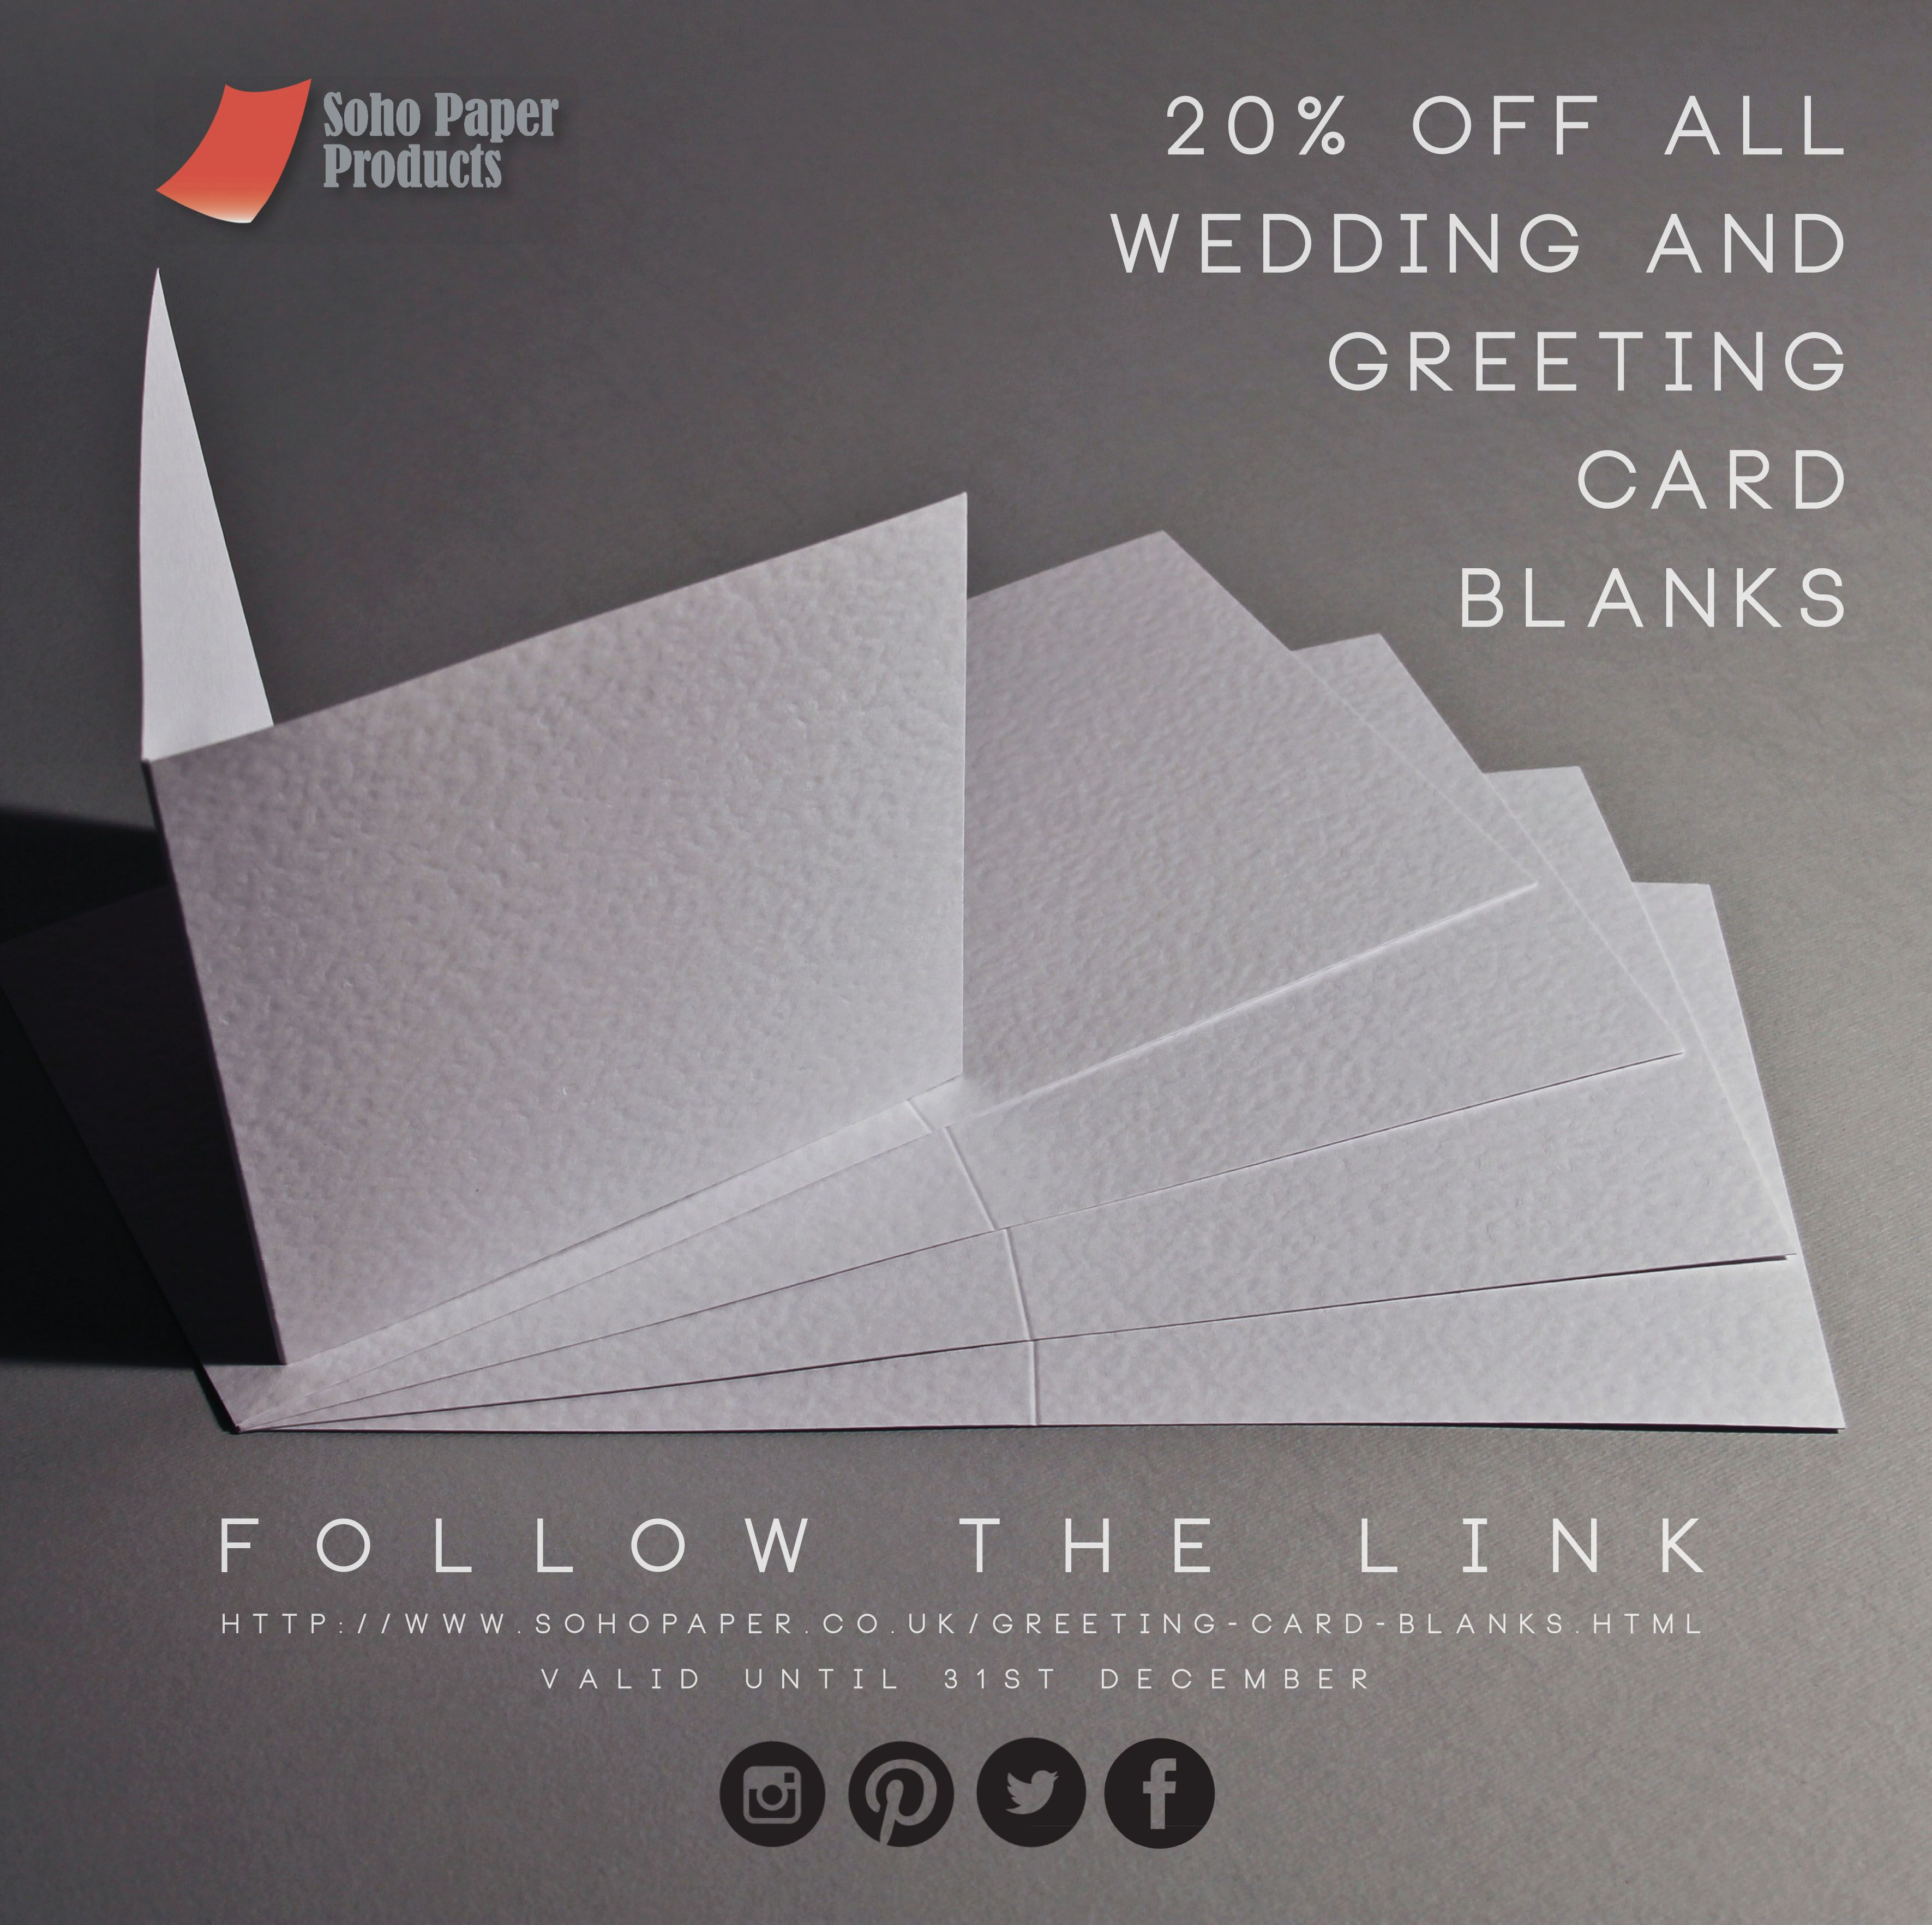 Card blanks httpsohopapergreeting card blanksml we card blanks httpsohopapergreeting m4hsunfo